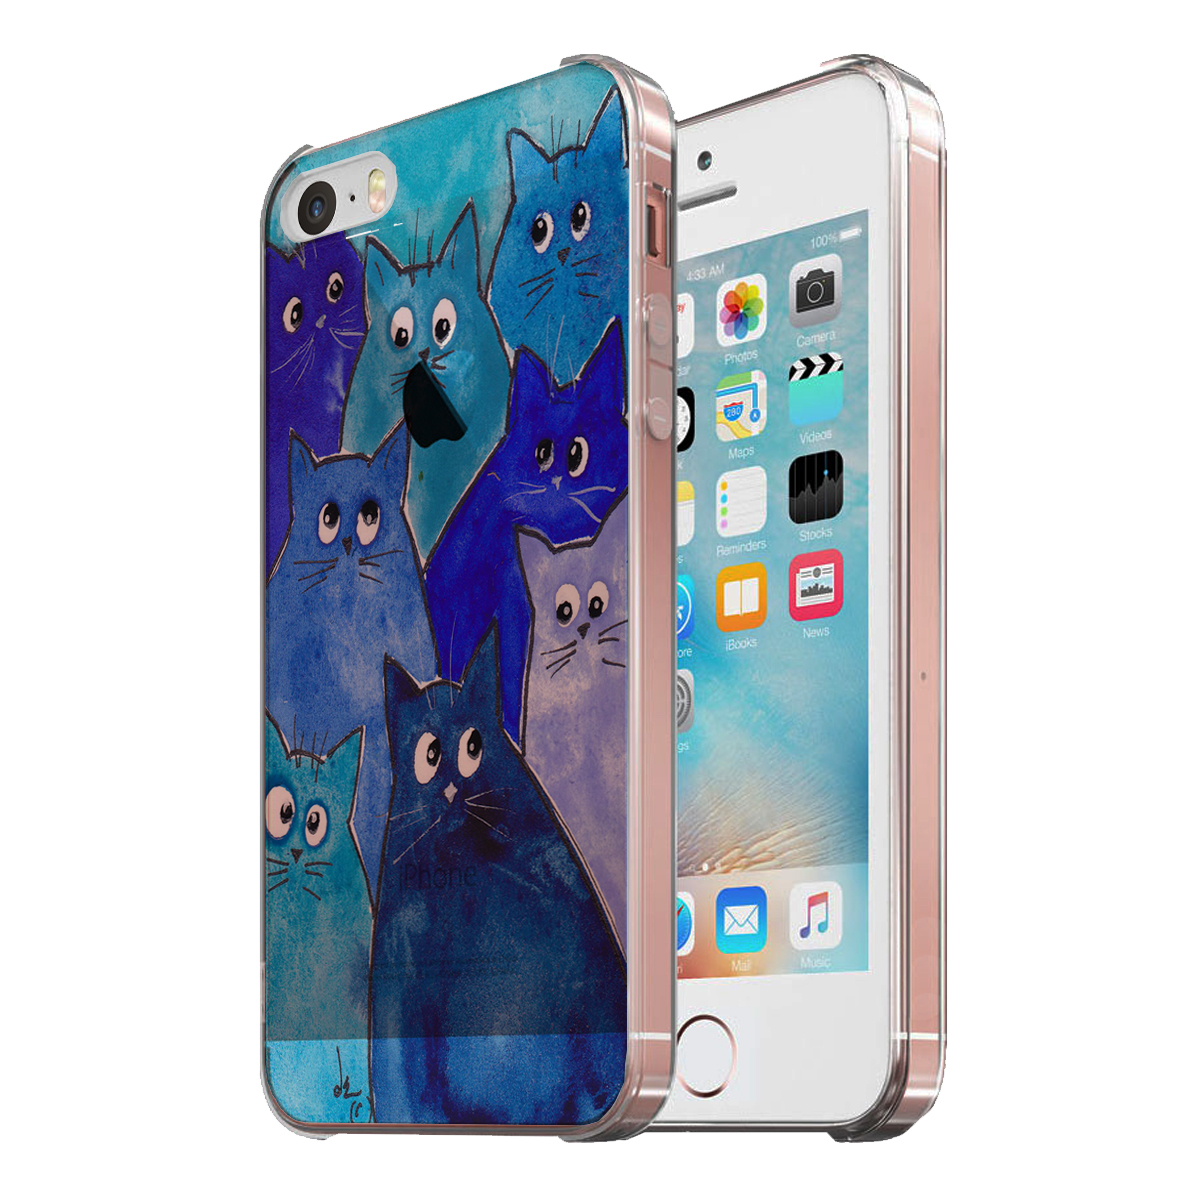 KuzmarK Clear Cover Case fits iPhone SE & iPhone 5 - Whacky Blue Kitties Abstract Cat Art by Denise Every